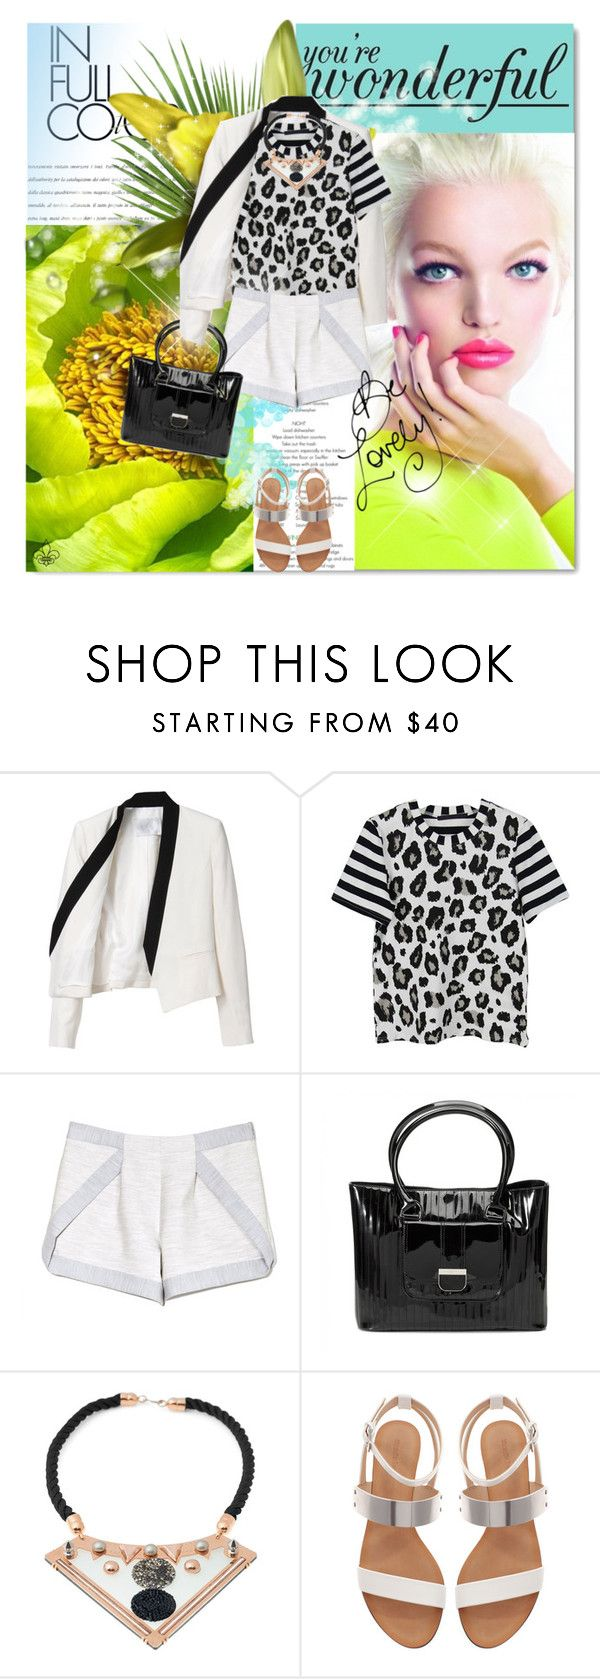 """Be Lovely"" by hatsgaloore ❤ liked on Polyvore featuring A.L.C., Thakoon Addition, Ted Baker, Cabinet, Zara, shorts, sandals, blackandwhite, blazer and animalprint"